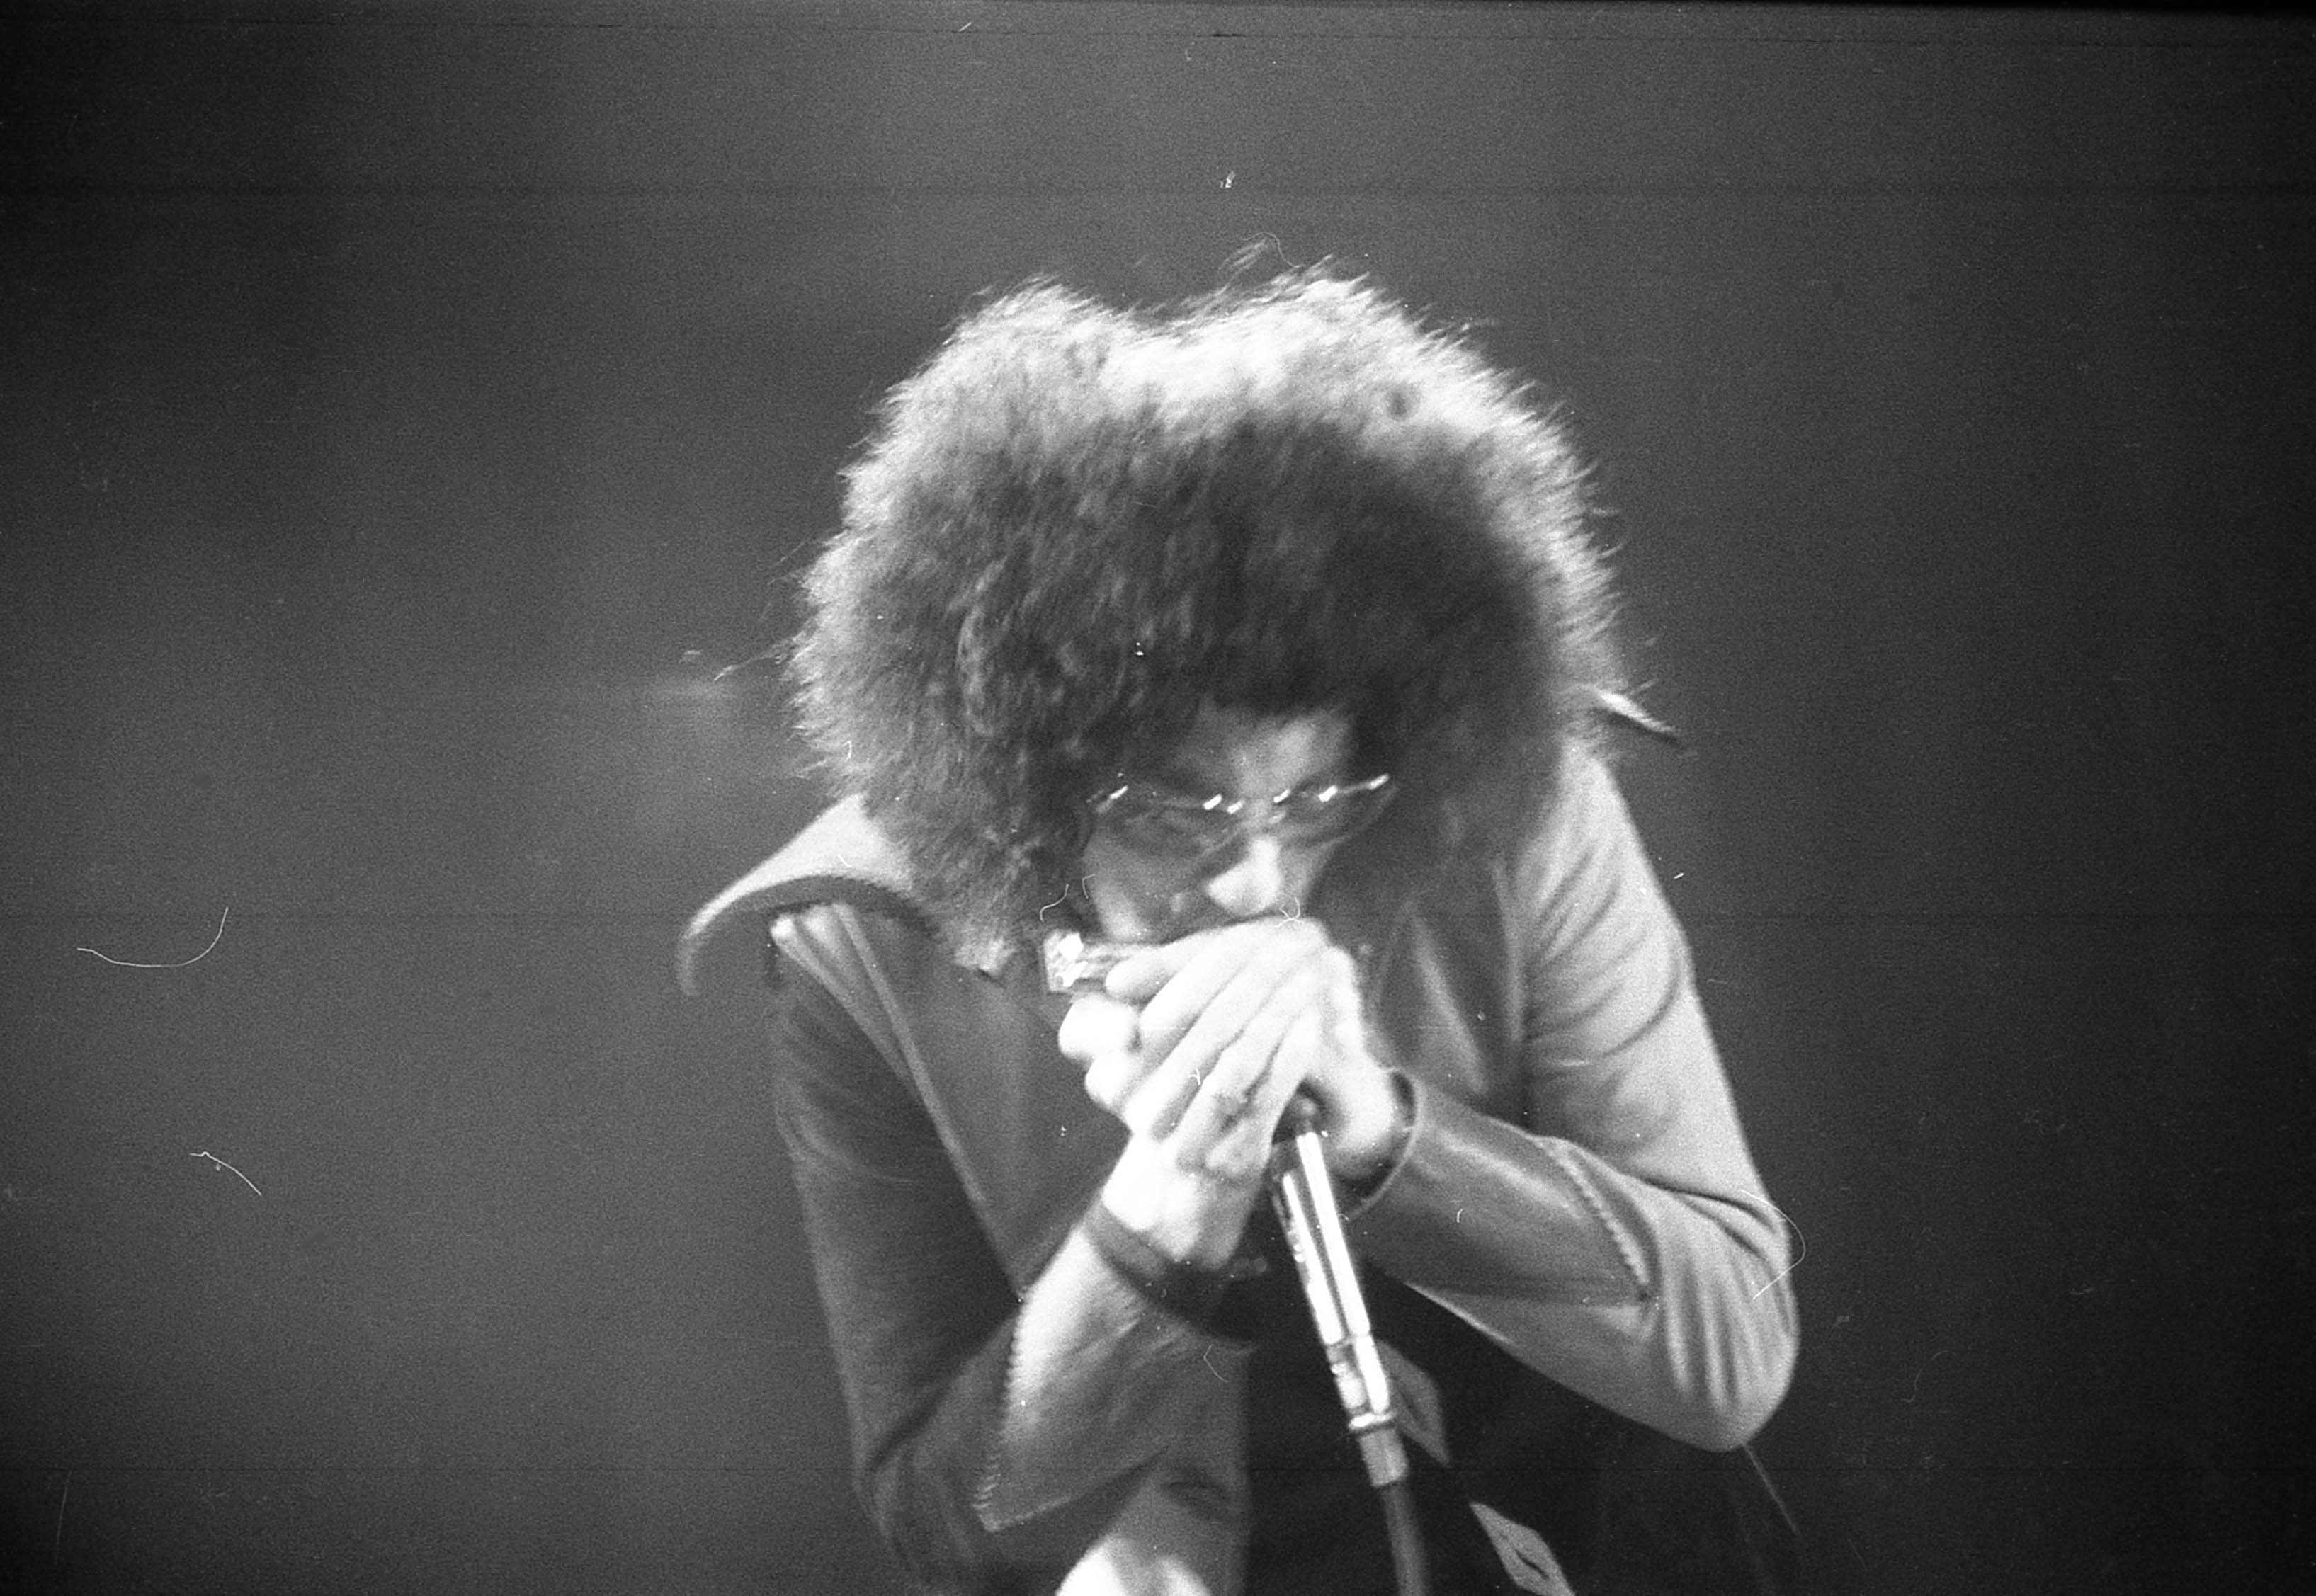 J. Geils Band live photo